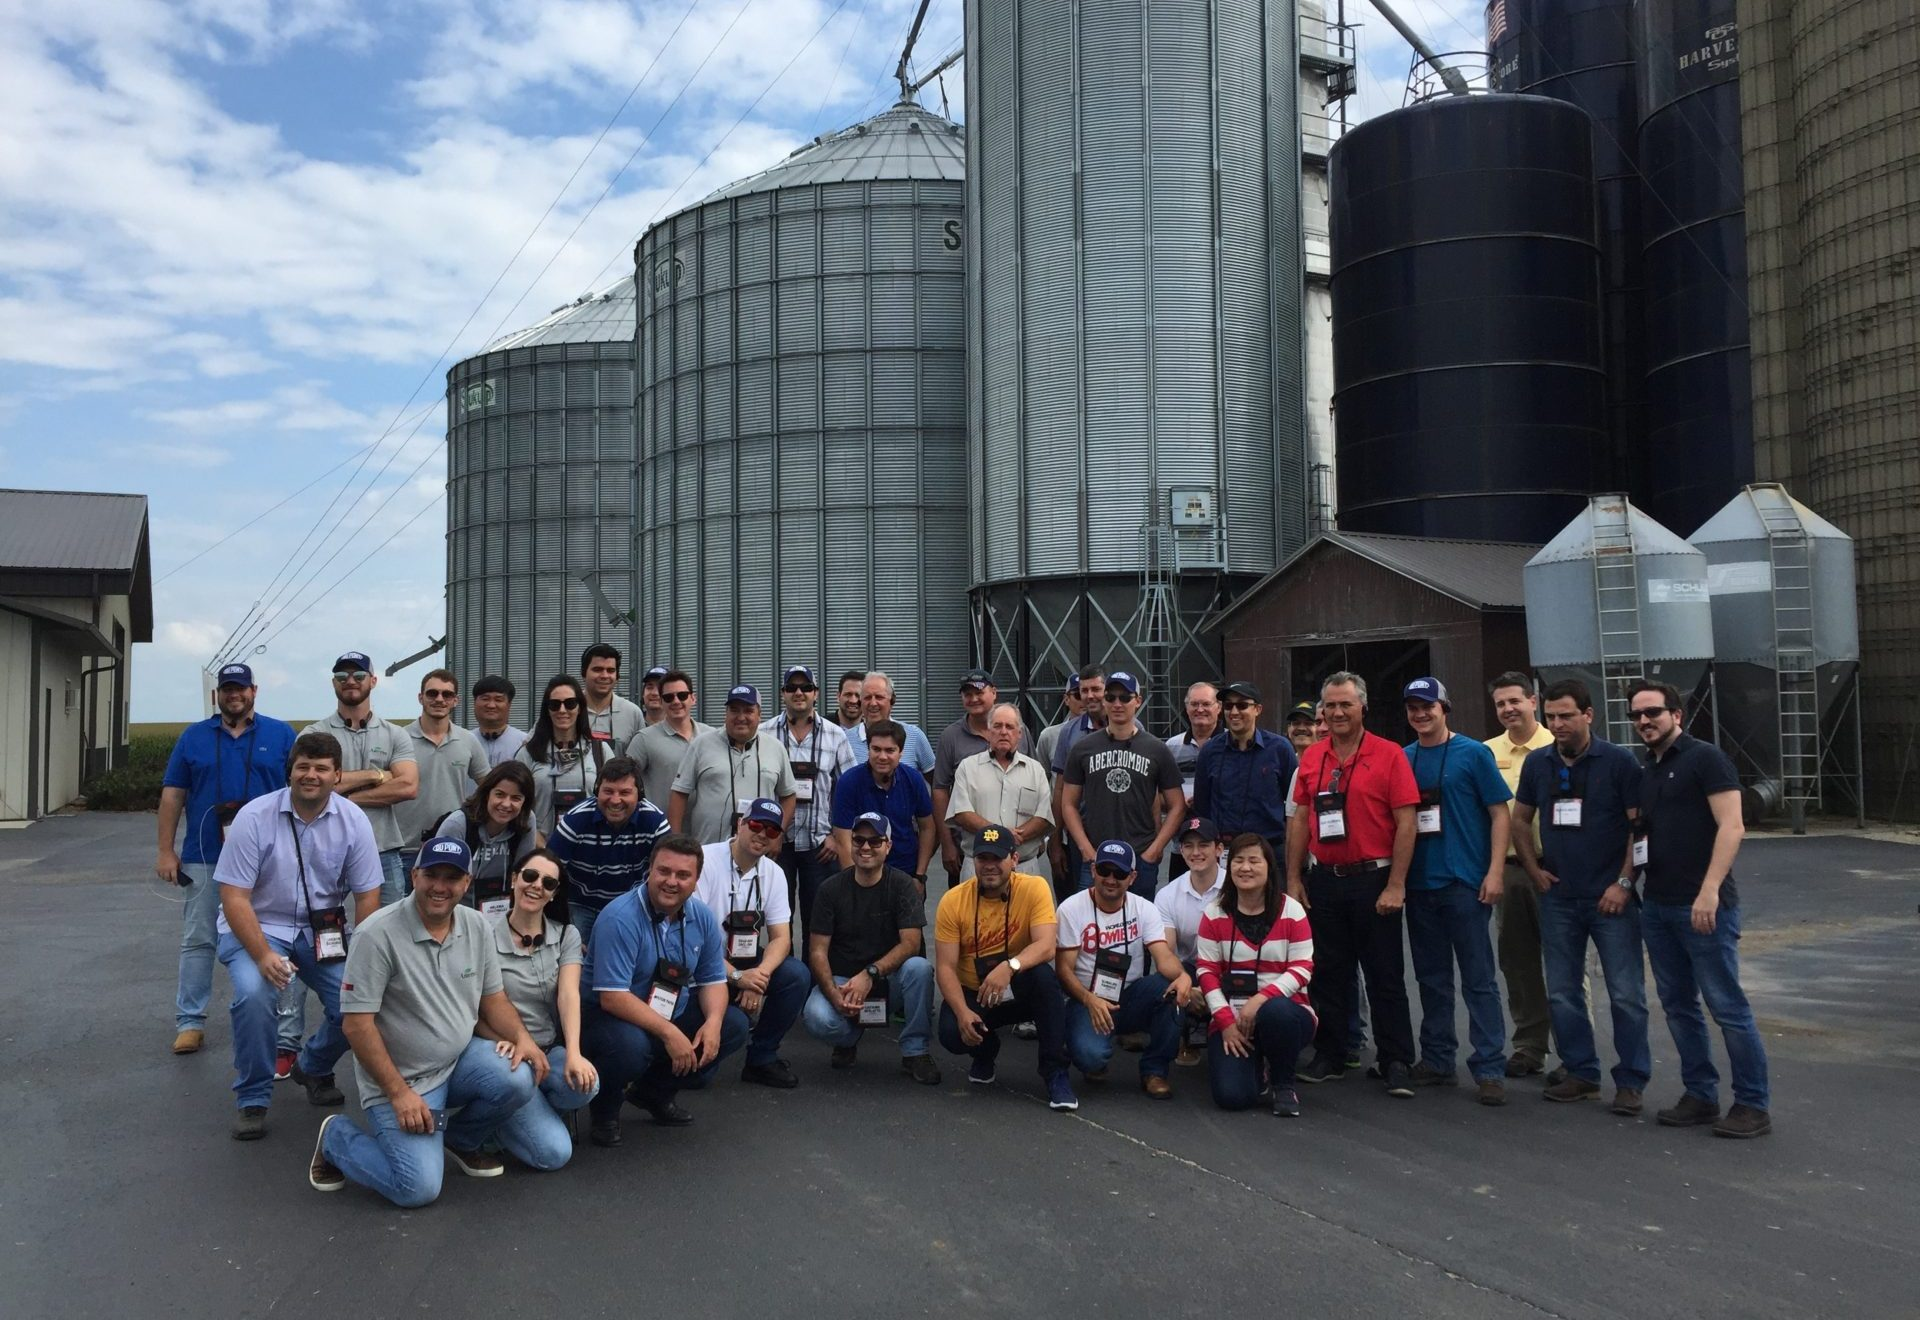 agtours.us tour group in front of silos